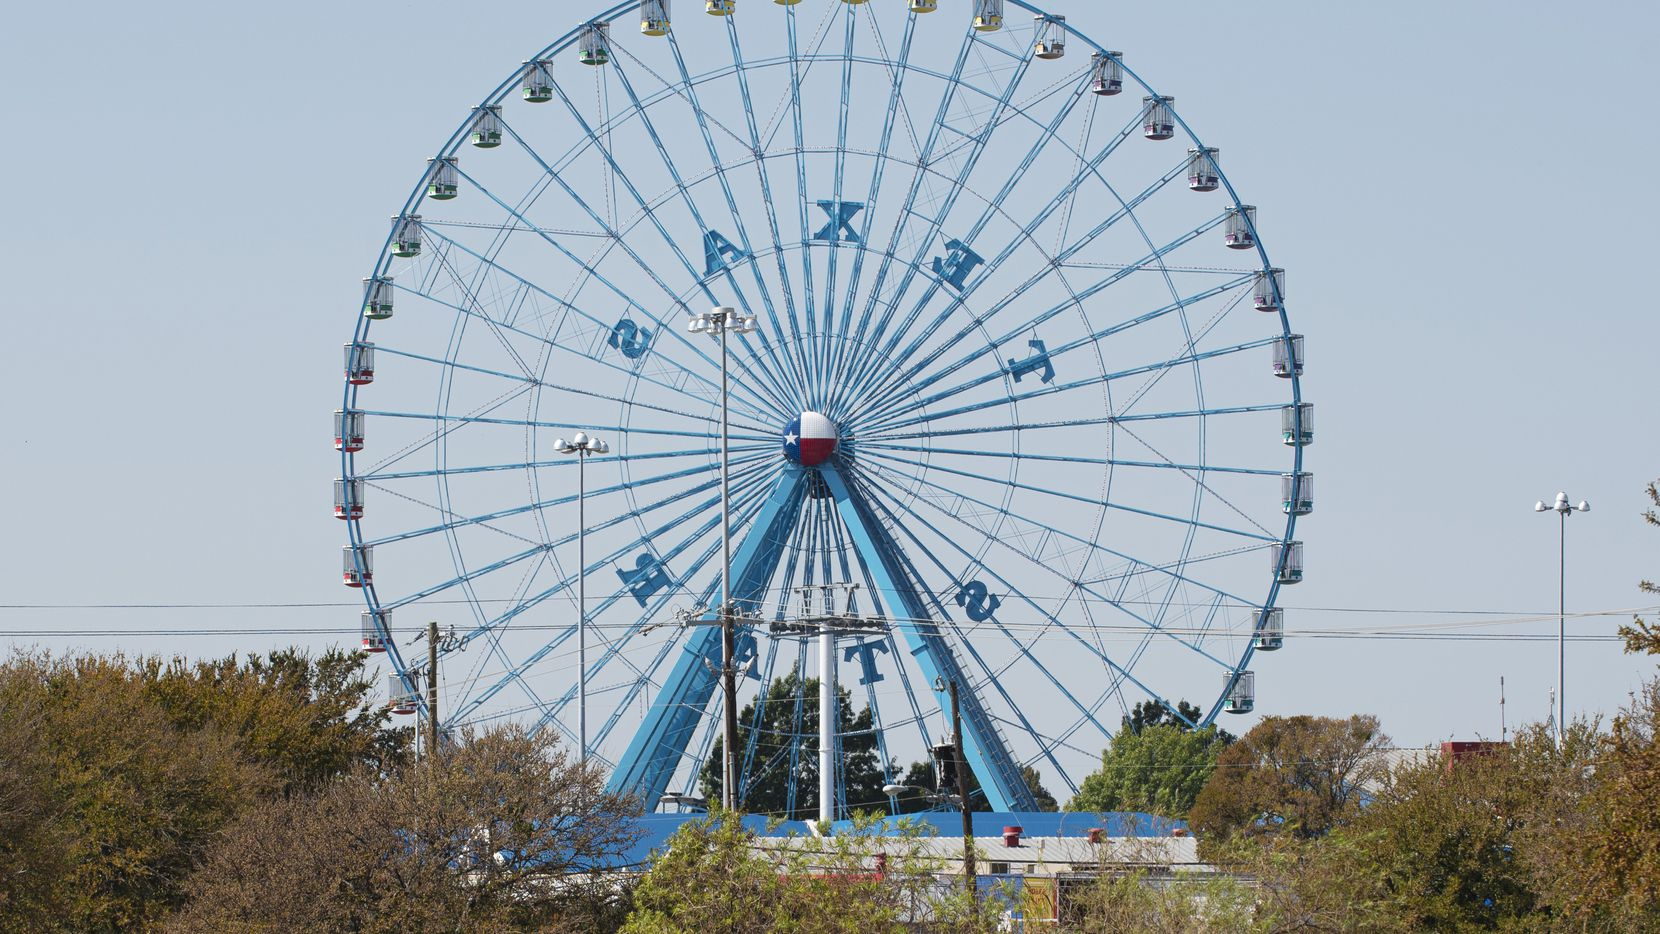 "Citing health concerns during the coronavirus pandemic, State Fair of Texas executives canceled the event in 2020. They're moving forward with plans for a State Fair in 2021, with a spokeswoman saying they're taking ""an optimistic and measured approach."""